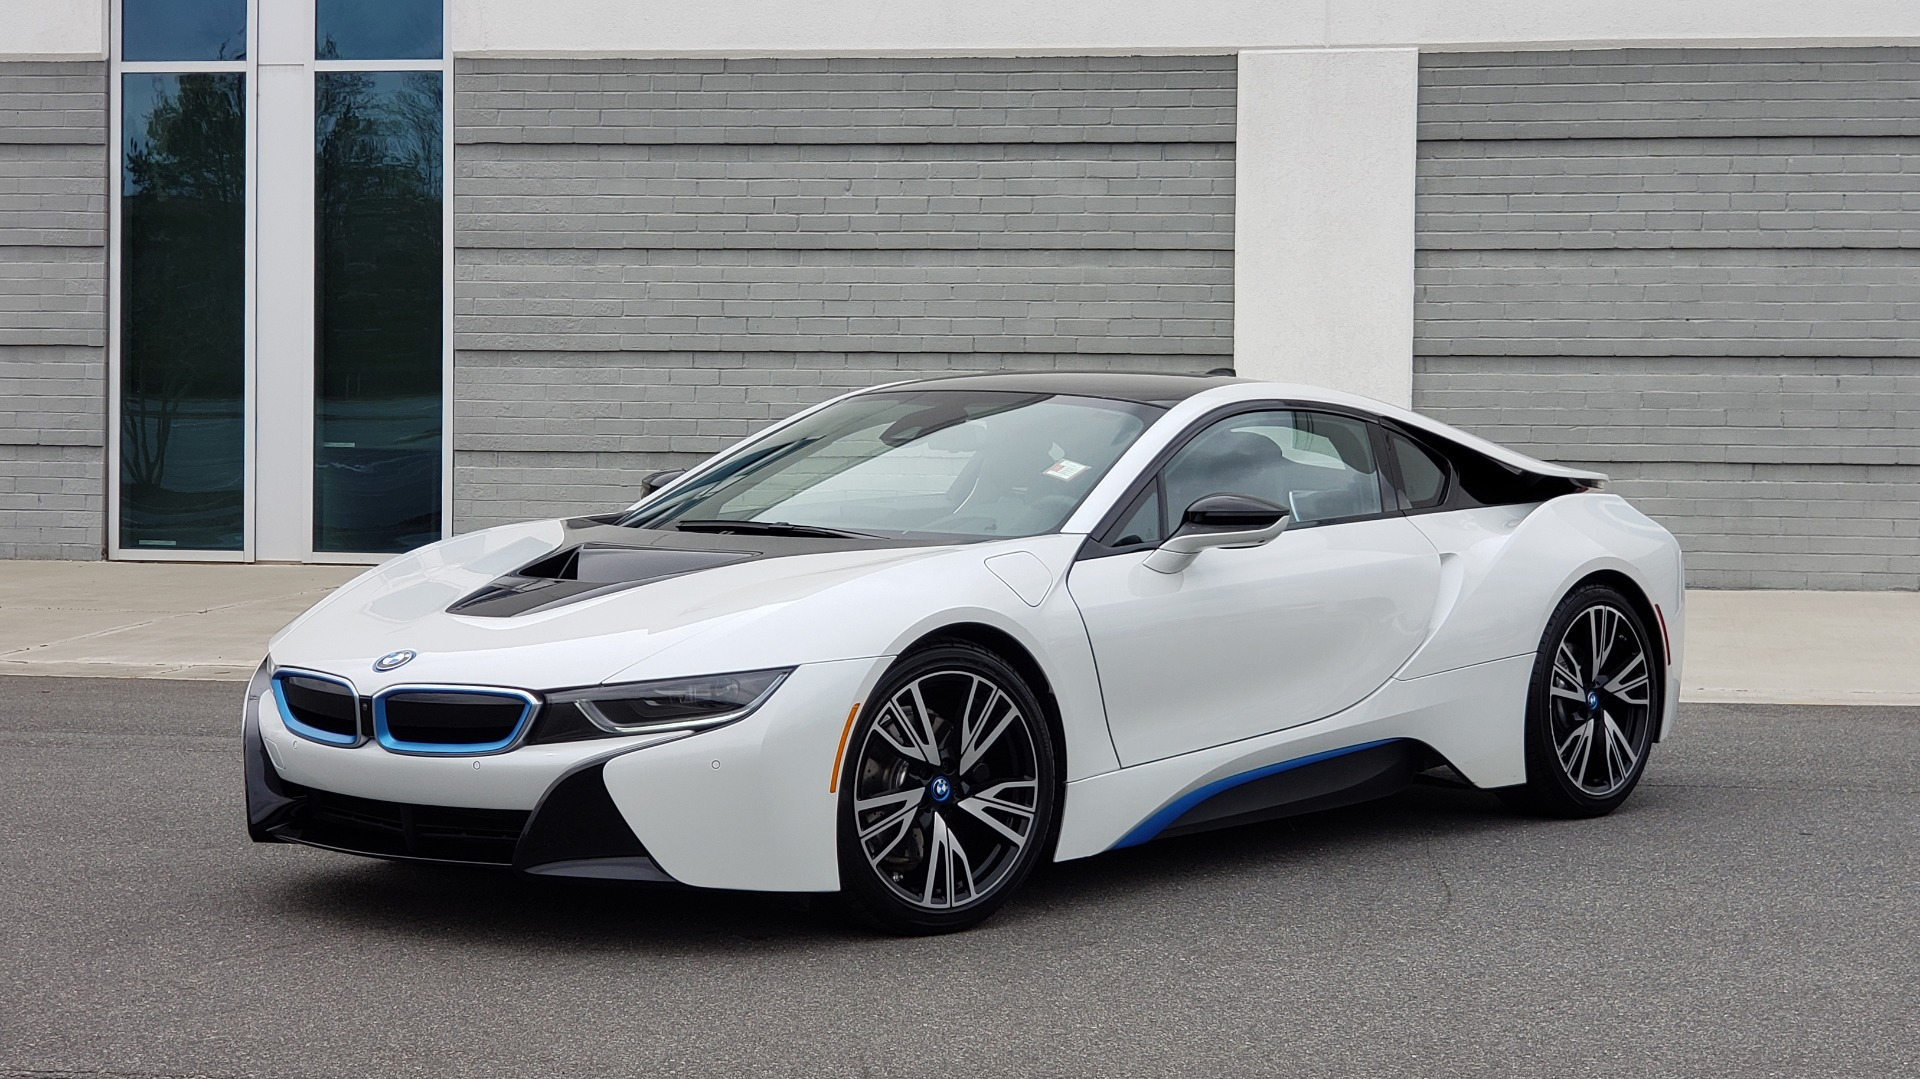 Used 2016 BMW i8 COUPE / GIGA WORLD / NAV / HUD / 20IN WHEELS / REARVIEW for sale Sold at Formula Imports in Charlotte NC 28227 1